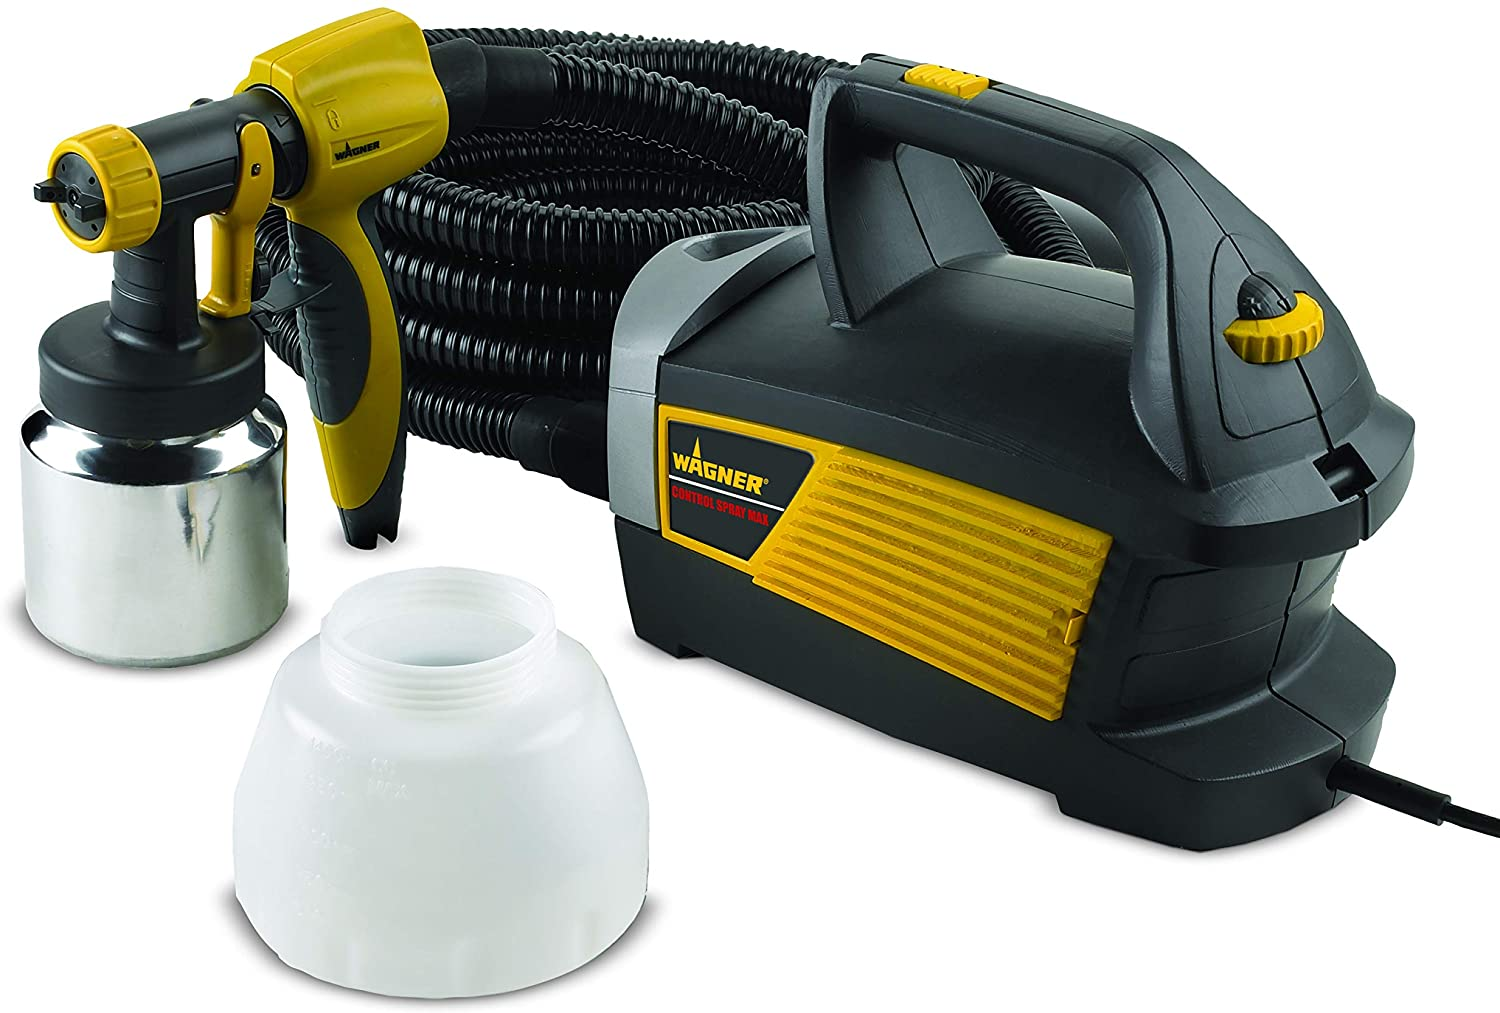 Wagner sprayer reviews